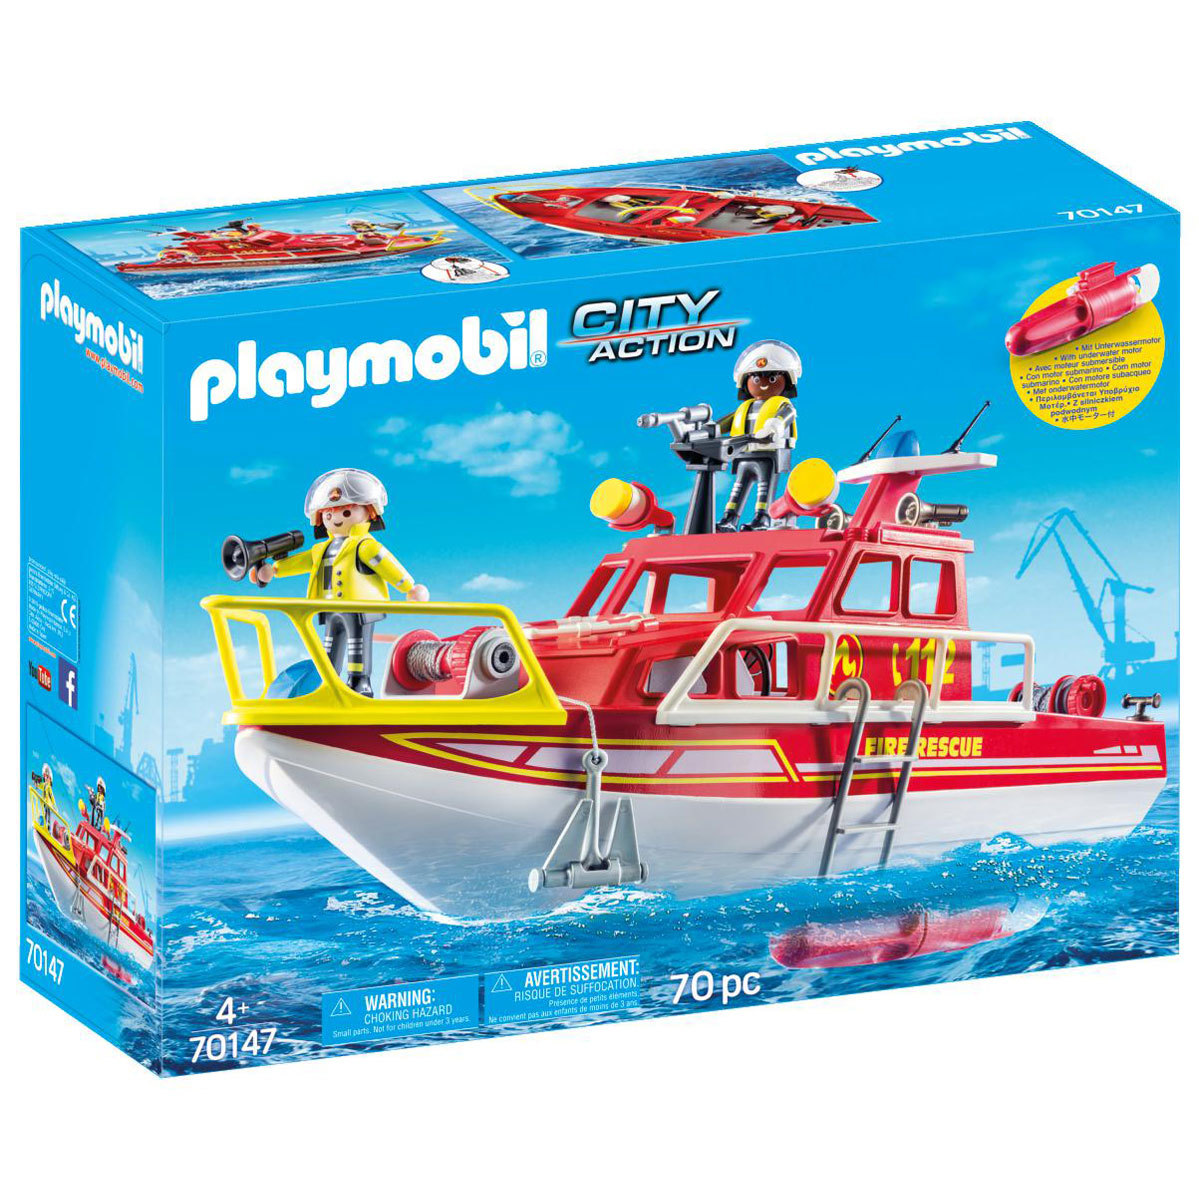 Playmobil 70147 City Action Floating Fire Rescue Boat with Underwater Motor from Early Learning Center